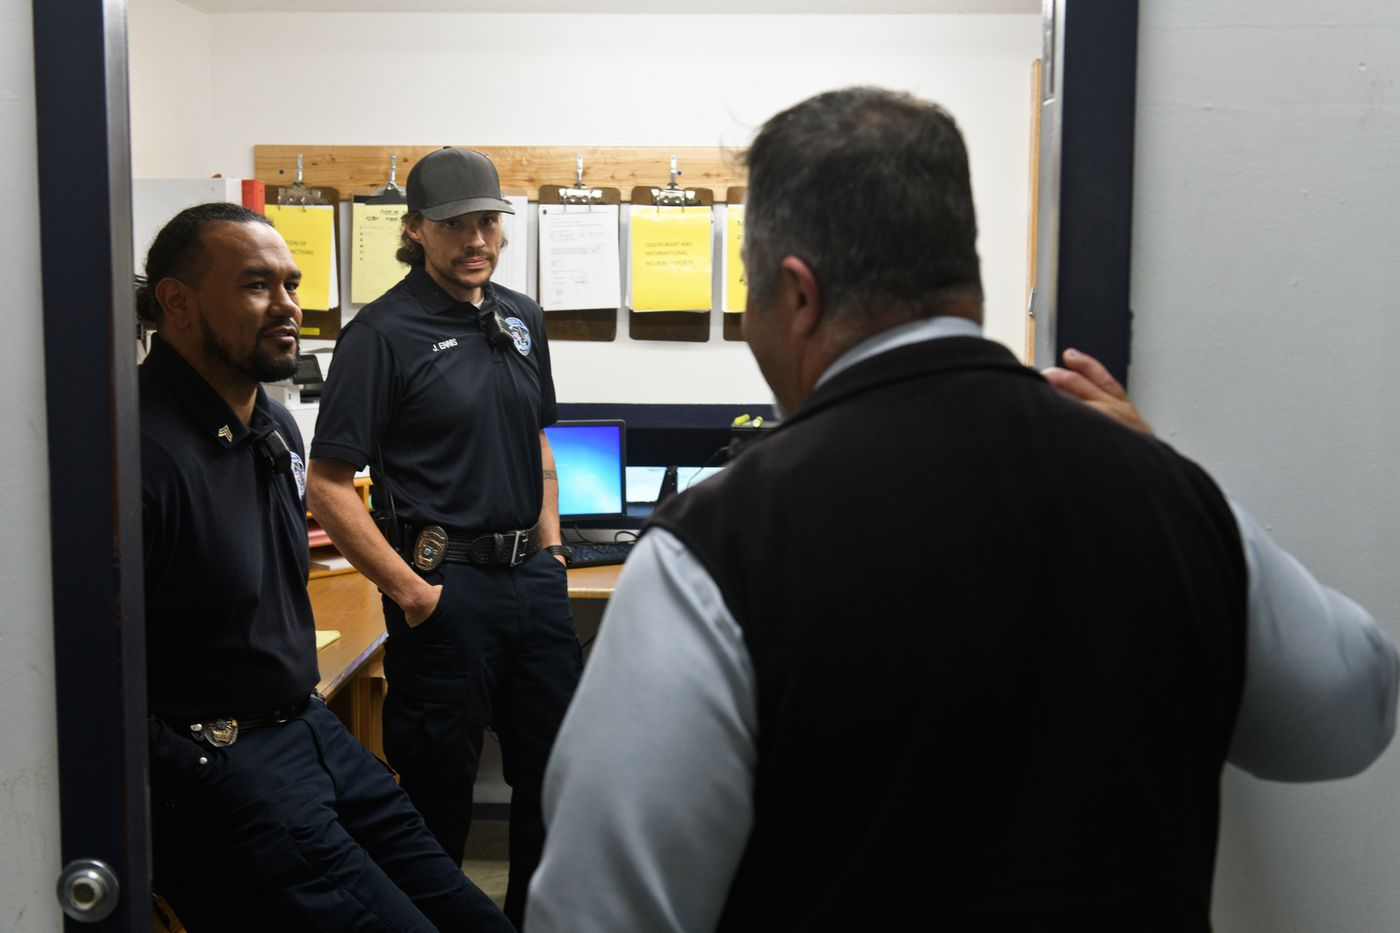 Correctional officers Benny Flores, left and Justin Ennis talk with Spring Creek superintendent Bill Lapinskas on Sept. 27. Ennis started a running club for prisoners at Spring Creek in April. (Marc Lester / ADN)